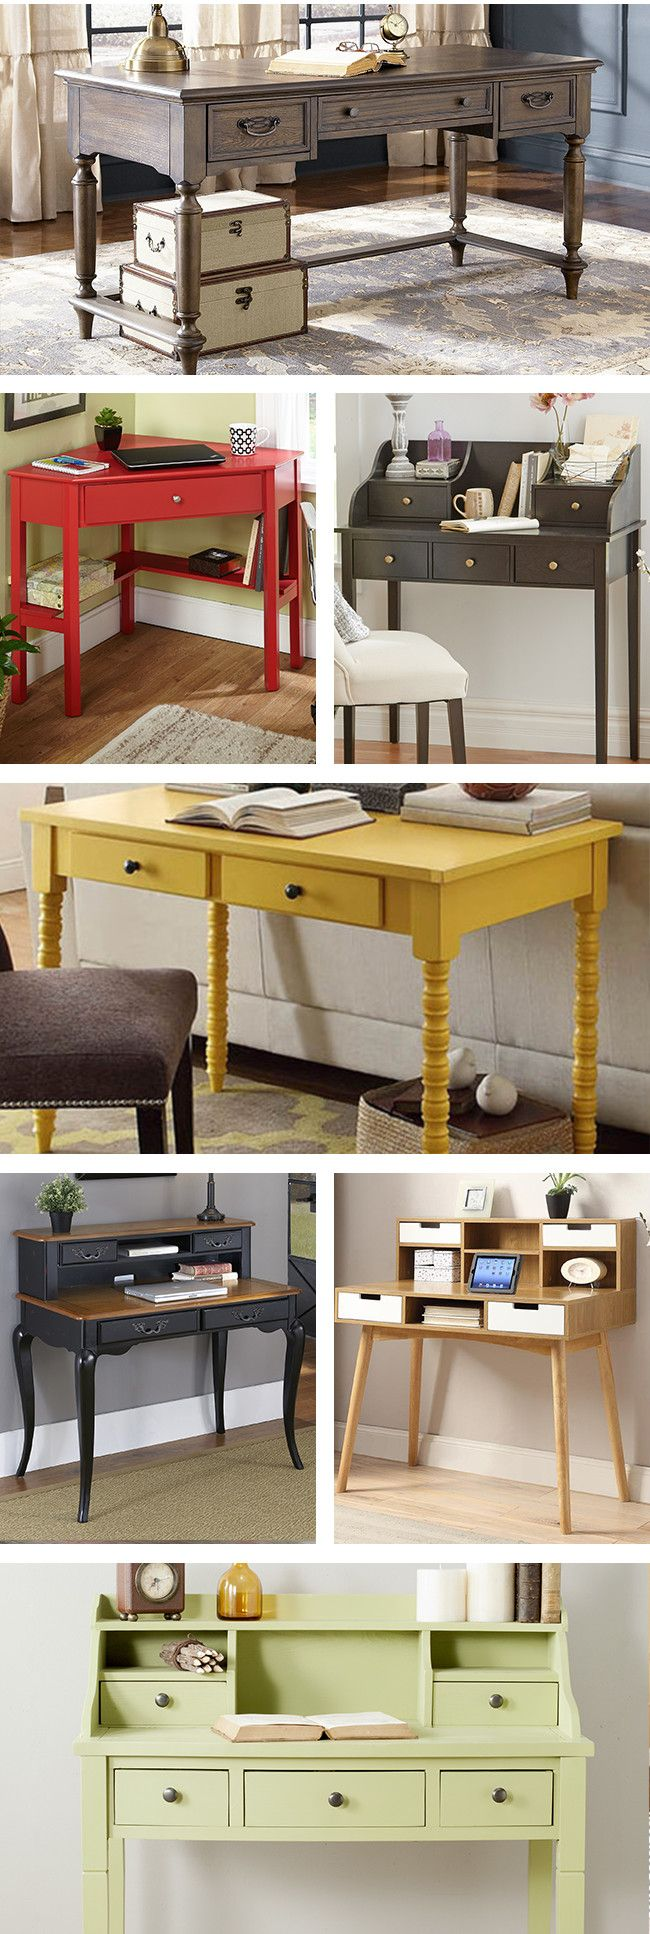 Based on your work needs, your home office and personal desk should provide storage for your supplies and paperwork, have enough space, and be a comfortable and inspiring place to work. Visit Wayfair and sign up today to get access to exclusive deals everyday up to 70% off. Free shipping on all orders over $49.